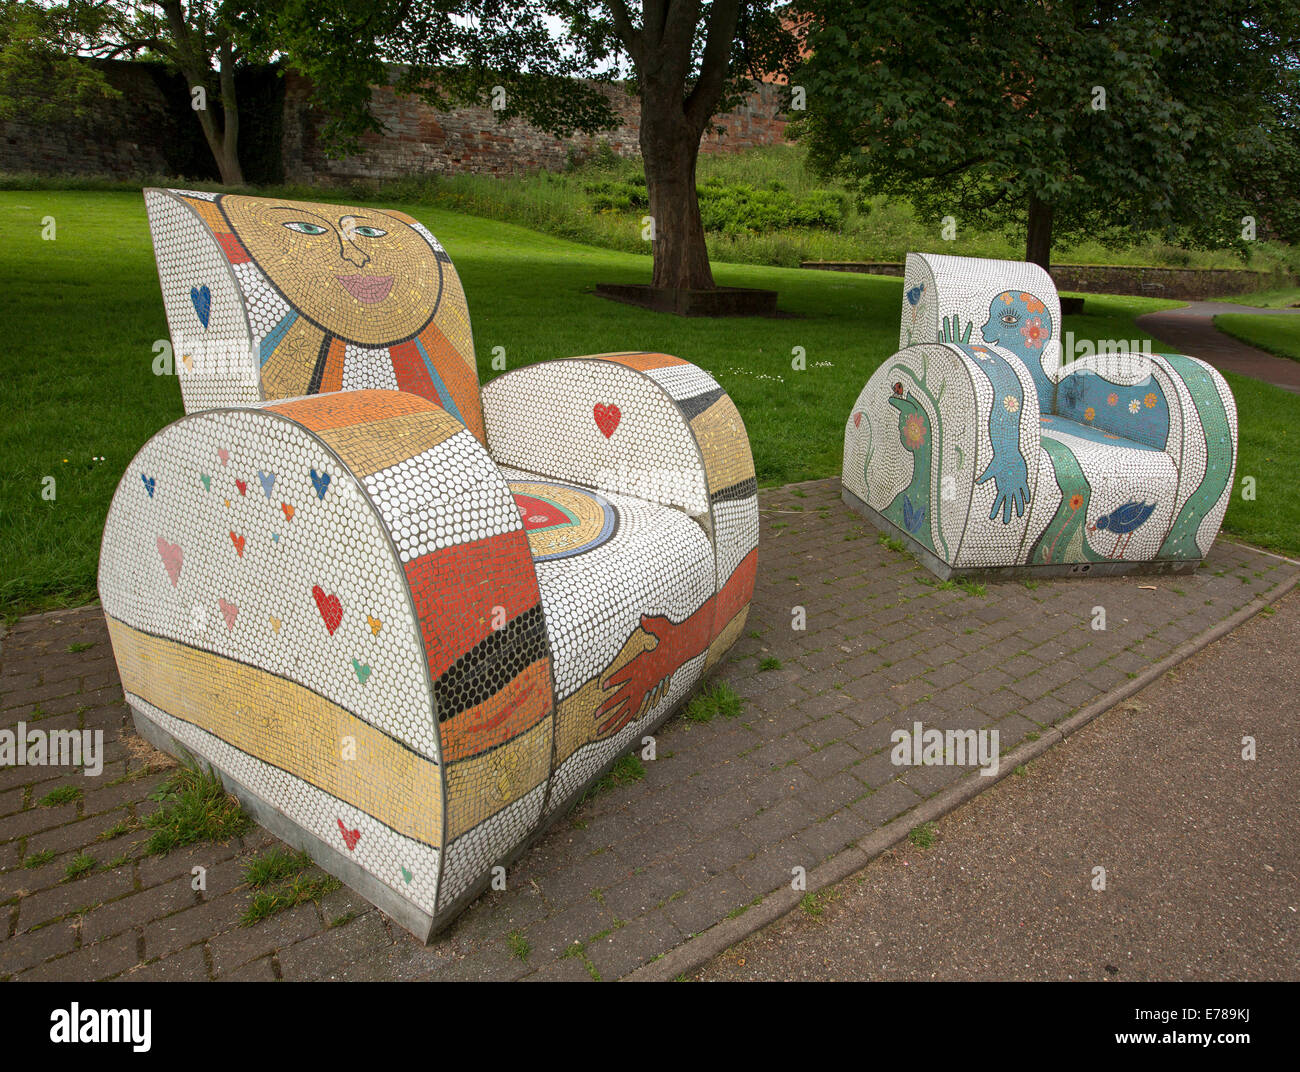 Hässlichster Sessel Outdoor Artwork Stockfotos Outdoor Artwork Bilder Alamy